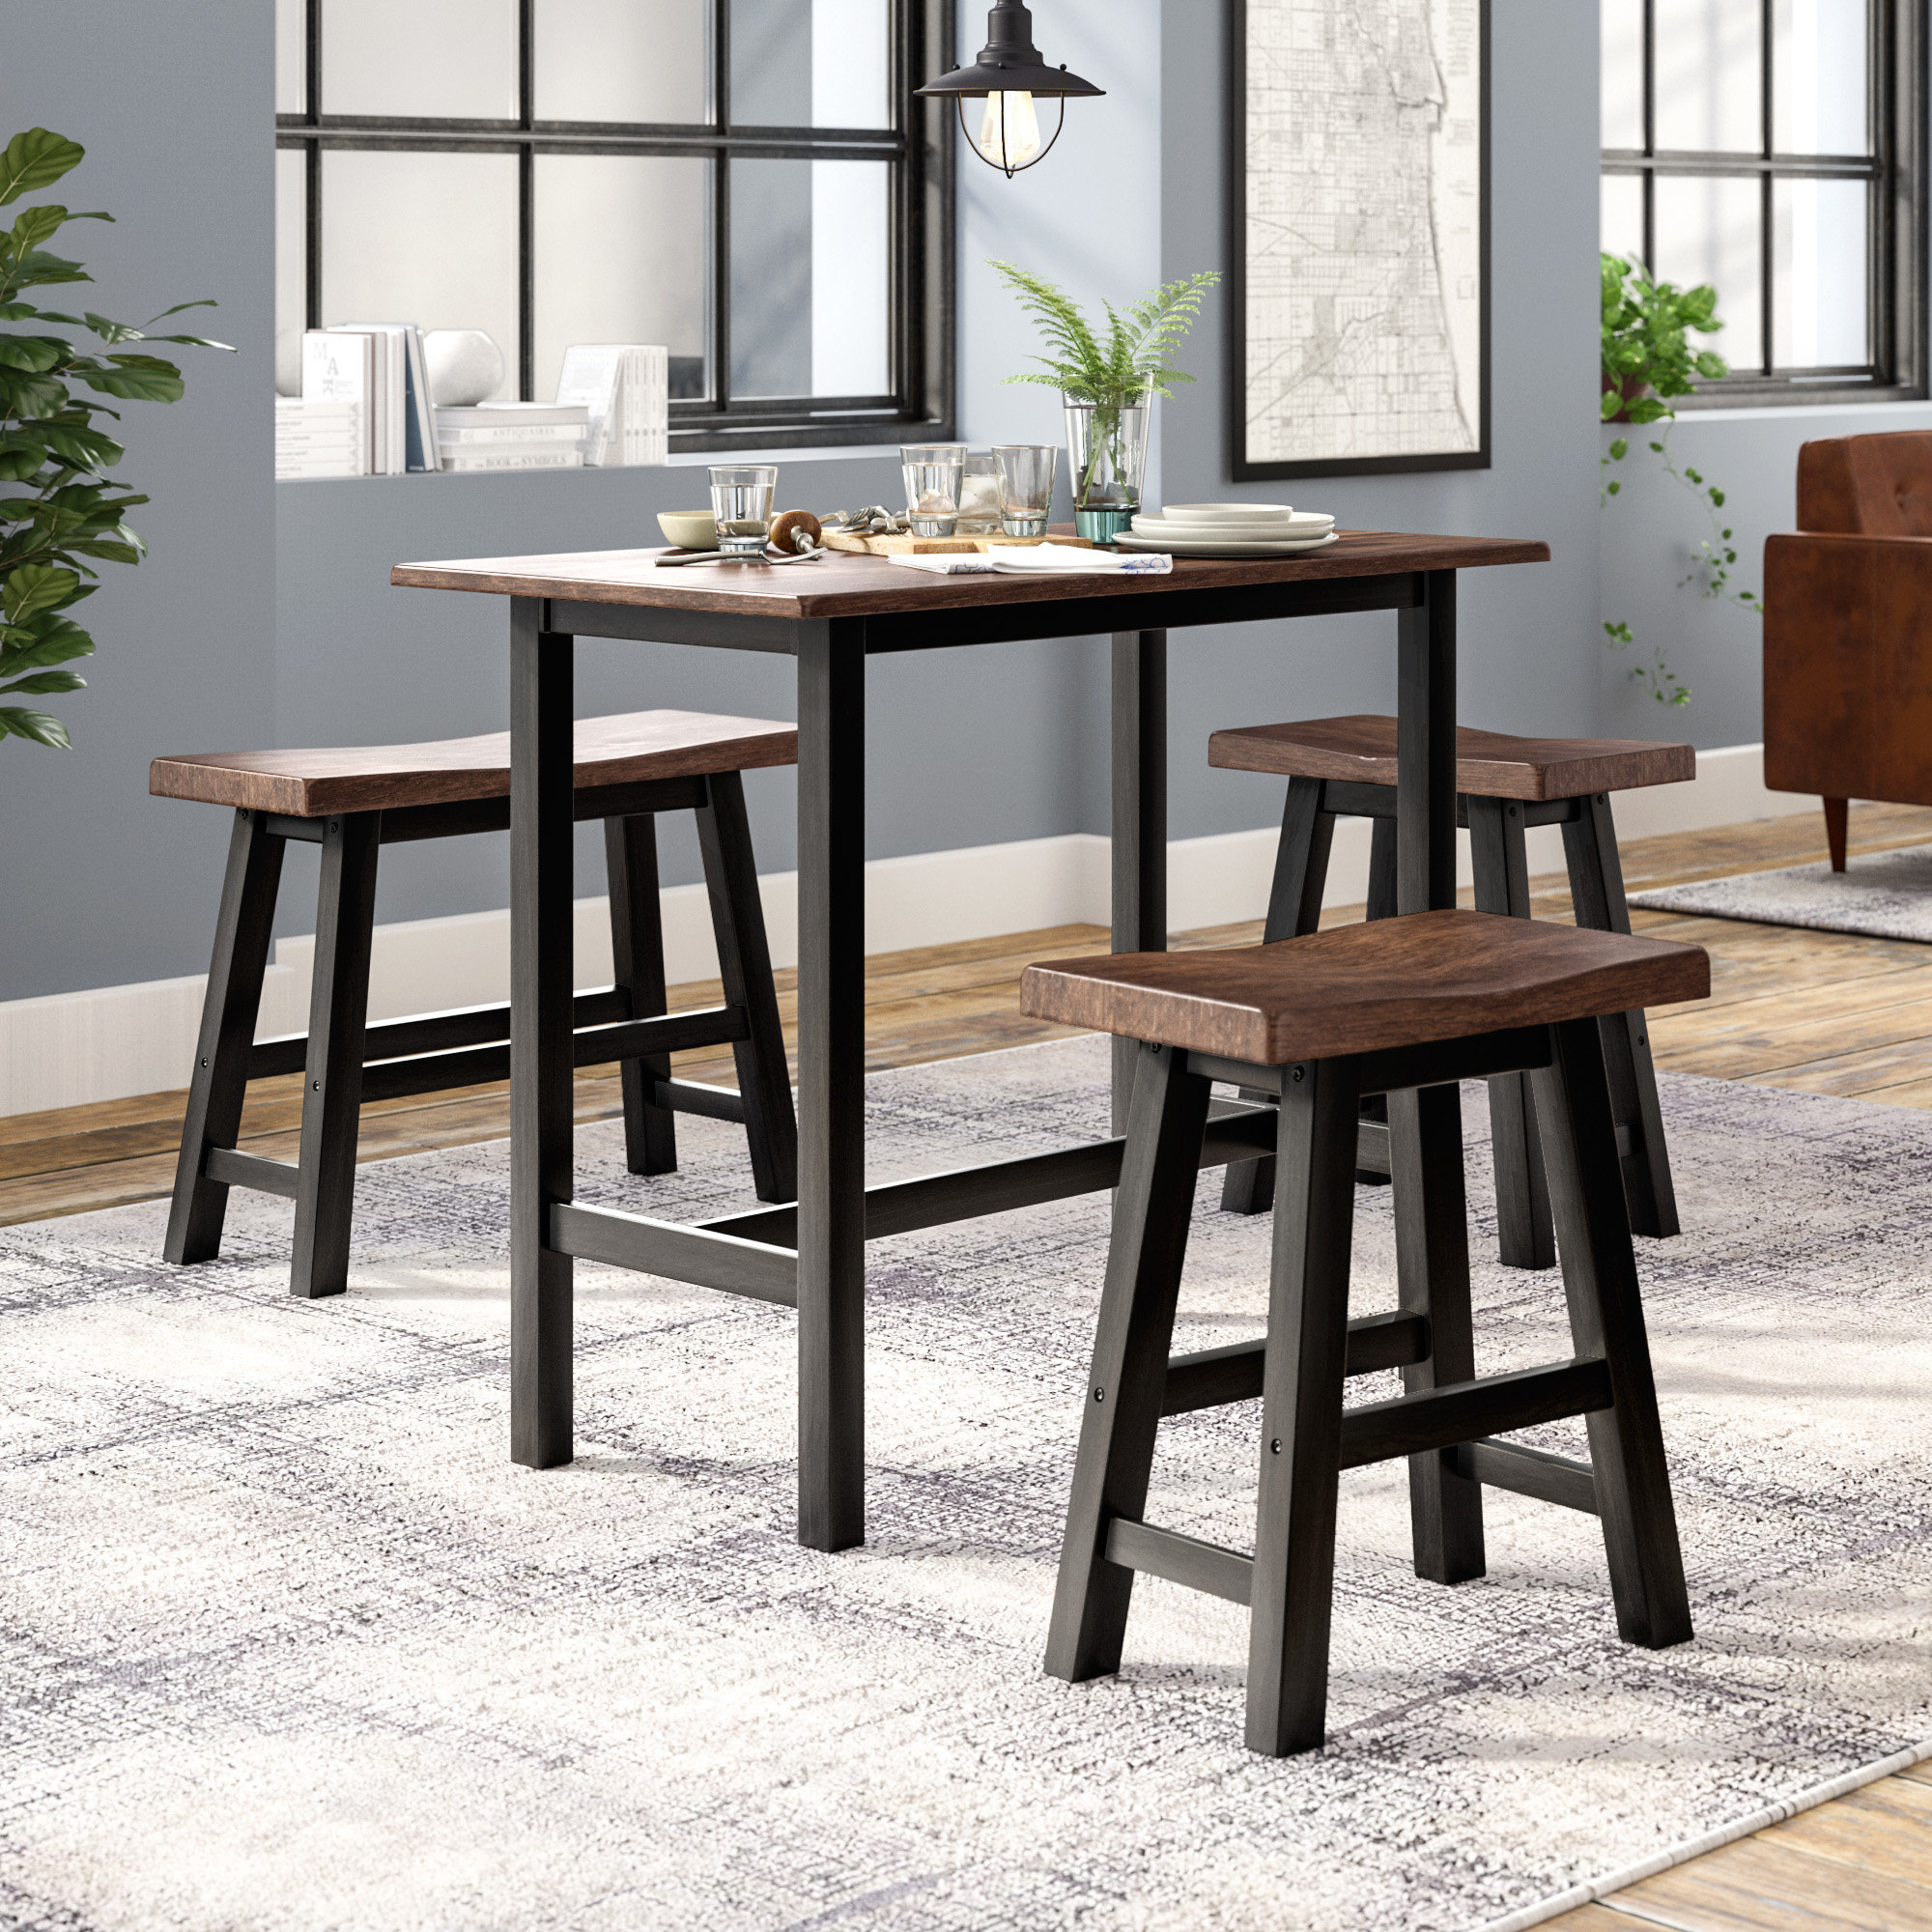 Chelsey 4 Piece Dining Set With 2017 Winsted 4 Piece Counter Height Dining Sets (View 13 of 20)